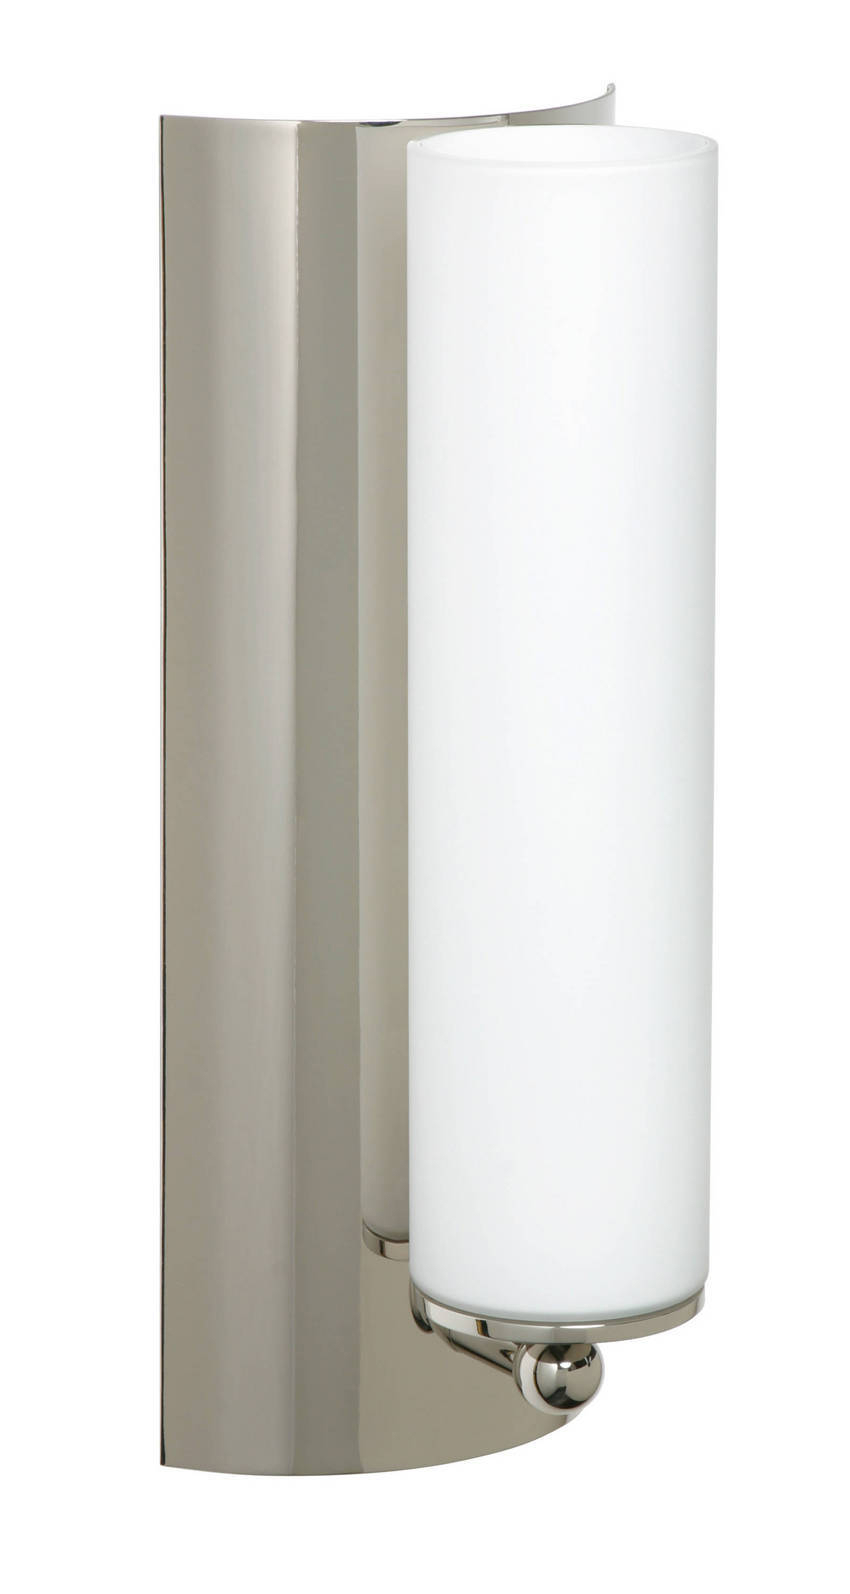 Besa 39 s metro has a ticket to ride - Cylindrical wall sconce ...